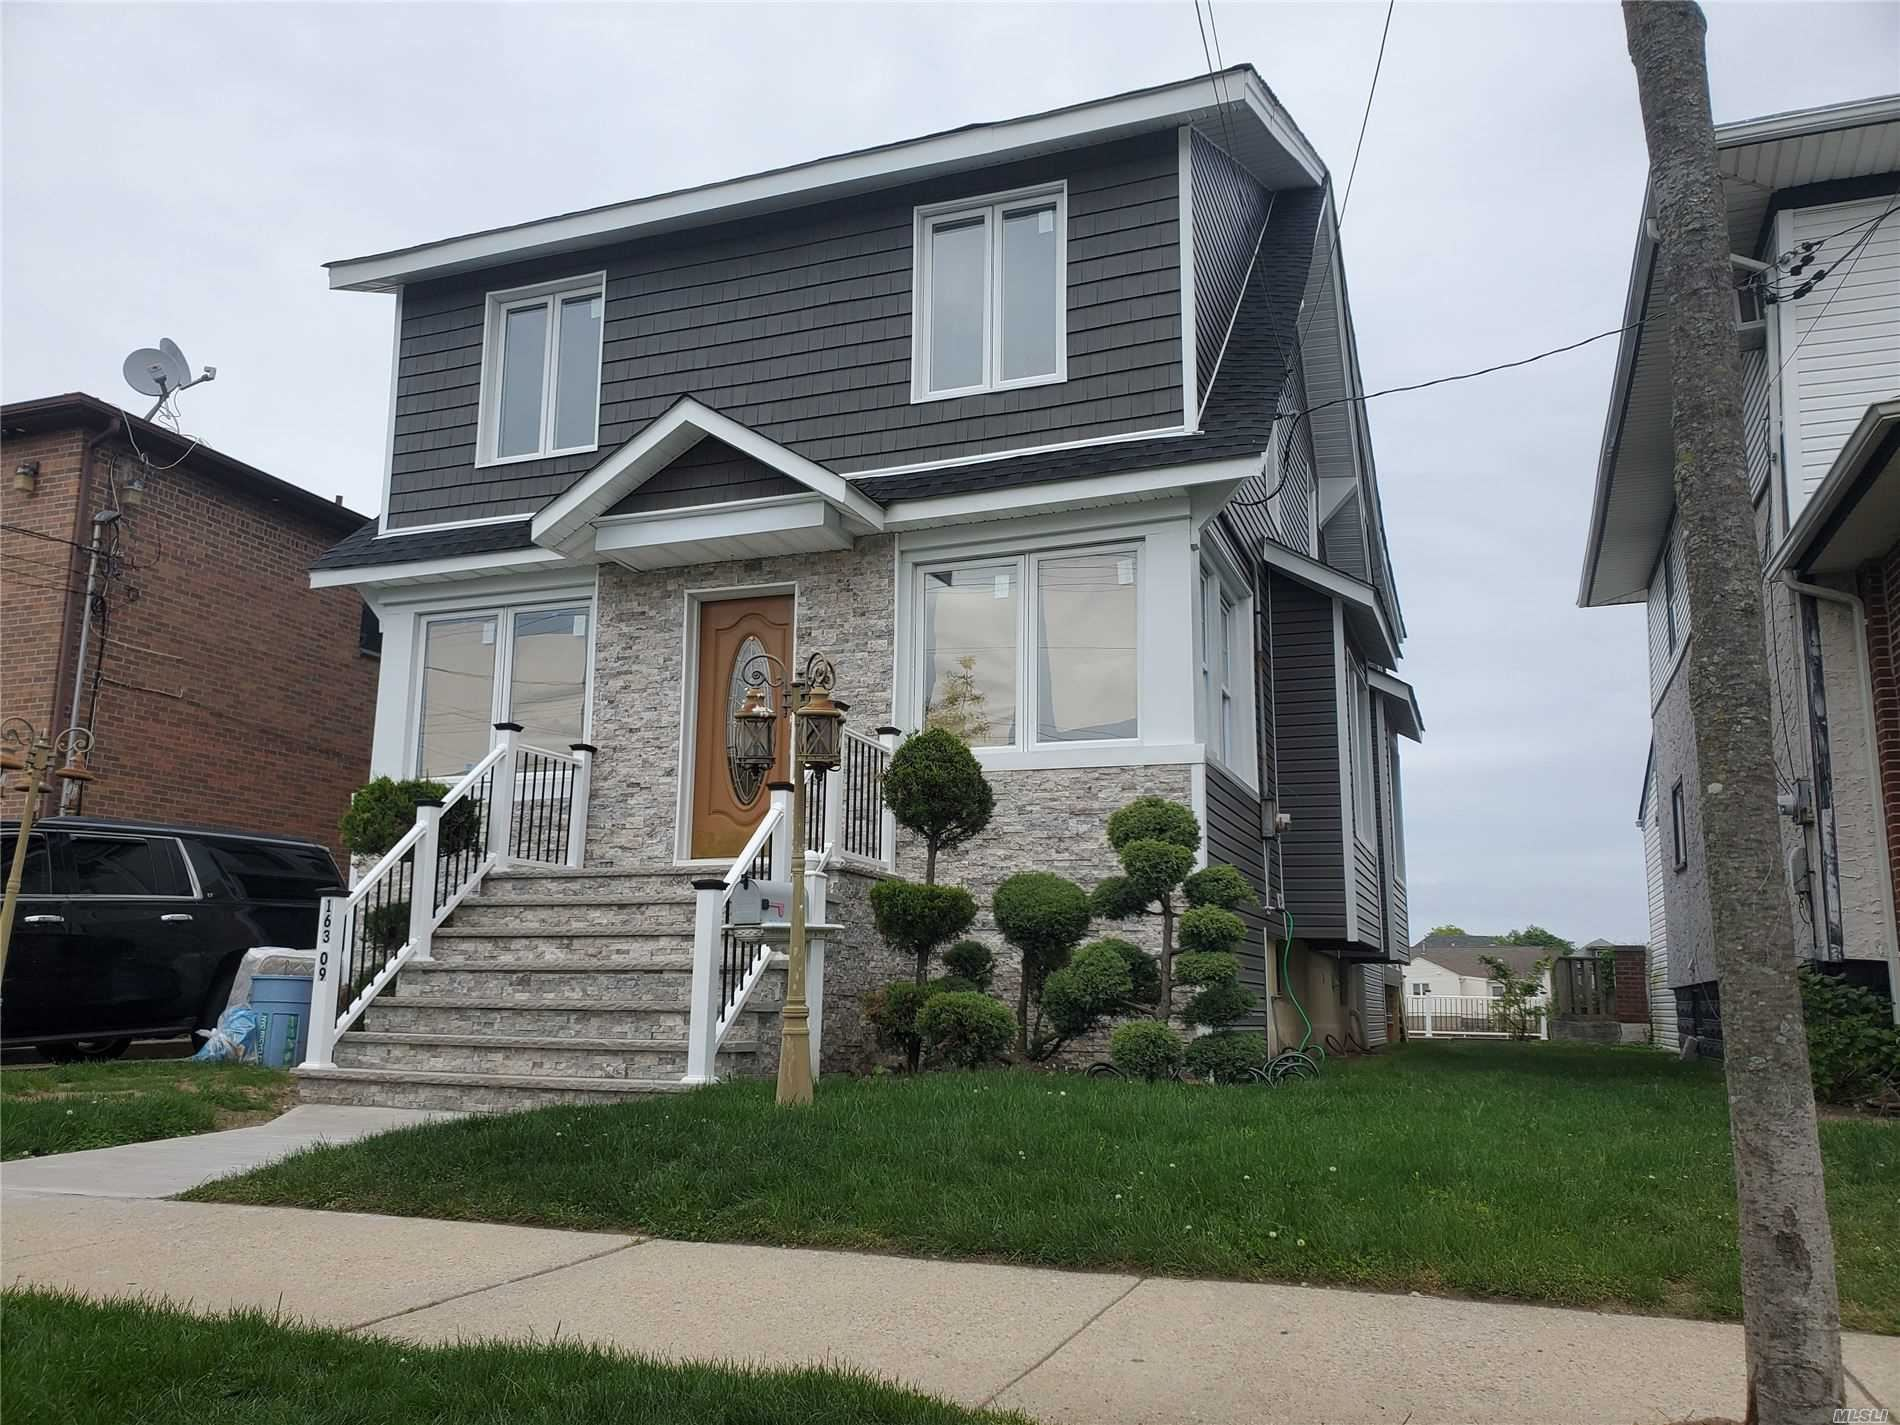 163-09 99th Street, Howard Beach, NY 11414 - MLS#: 3217360